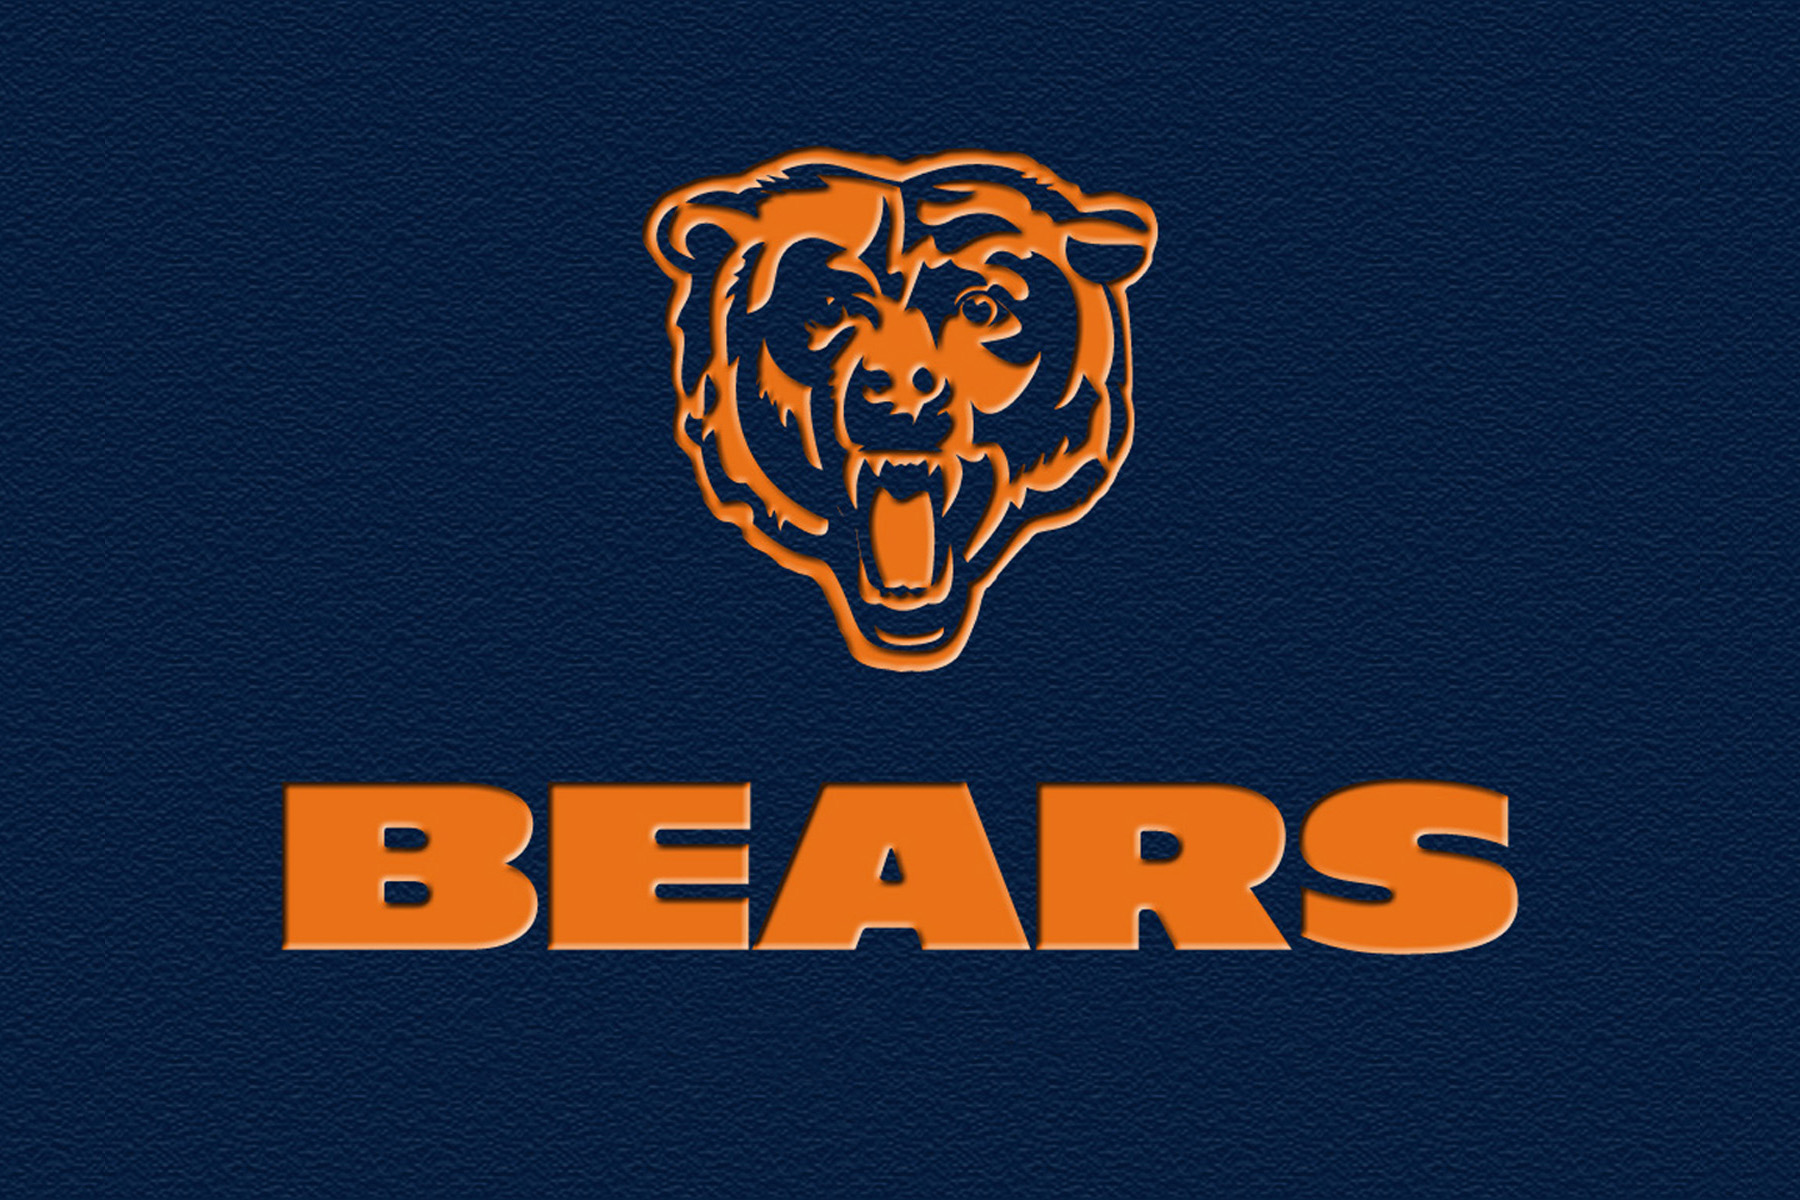 Chicago Bears wallpaper HD background Chicago Bears wallpapers 1800x1200